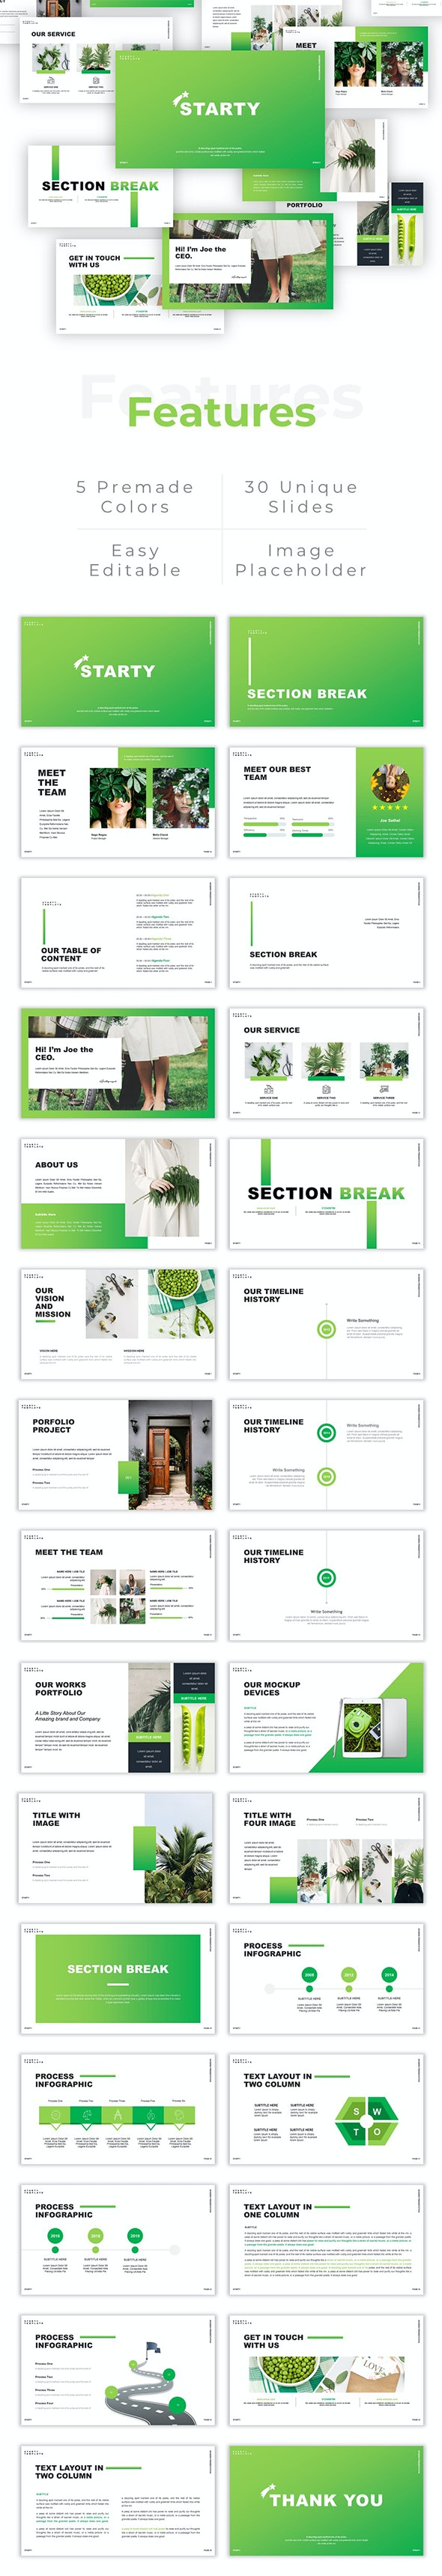 Starty - Creative Green Leaf PowerPoint Template - Nature PowerPoint Templates